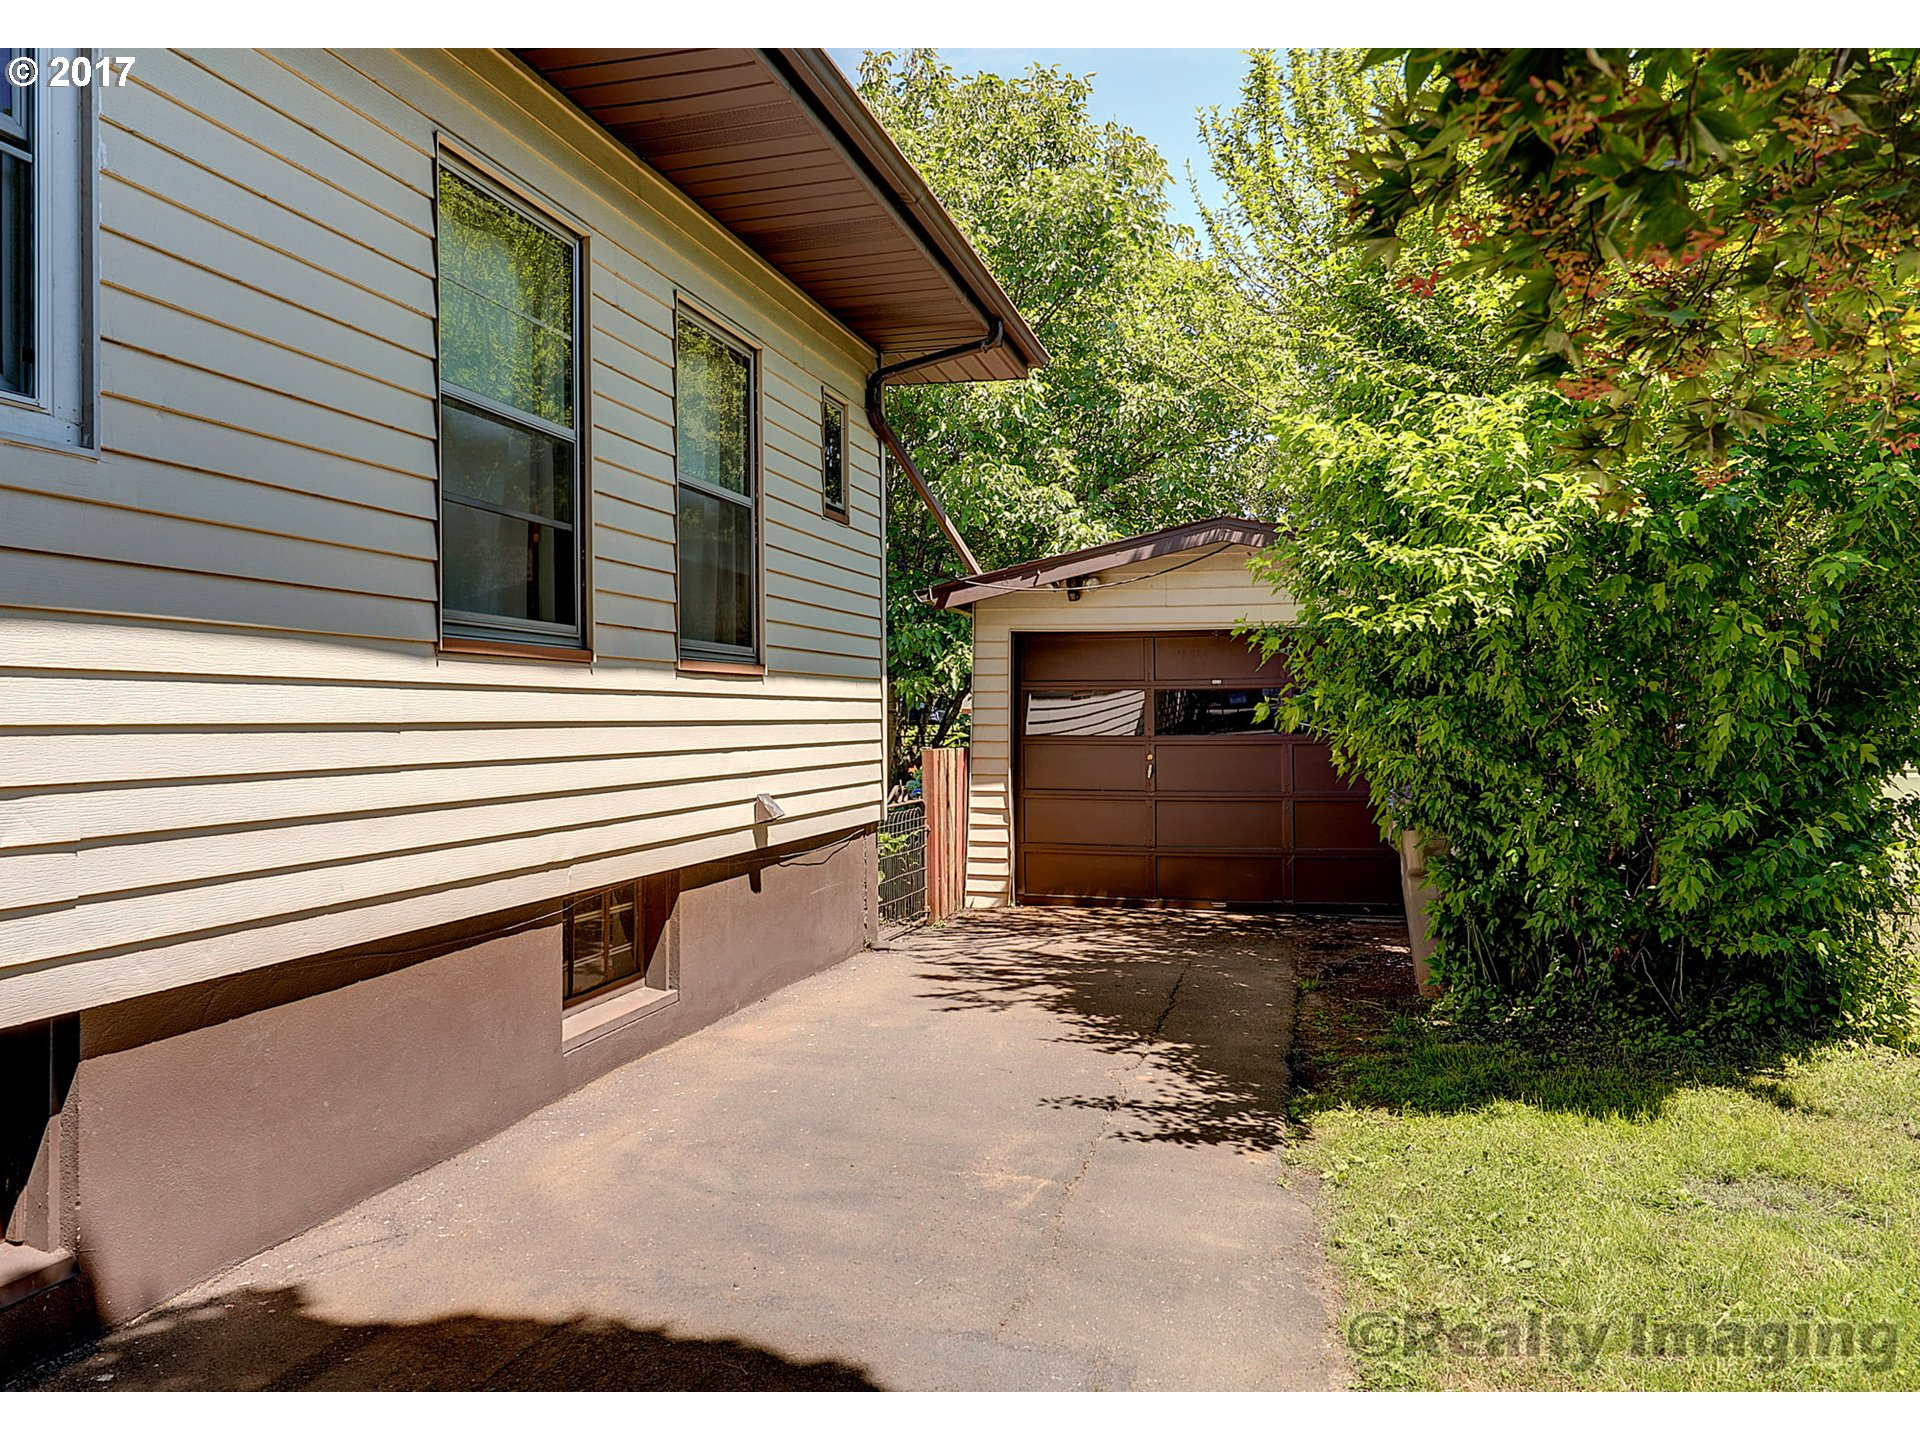 1604 SE 38TH AVE Portland, OR 97214 - MLS #: 17090350